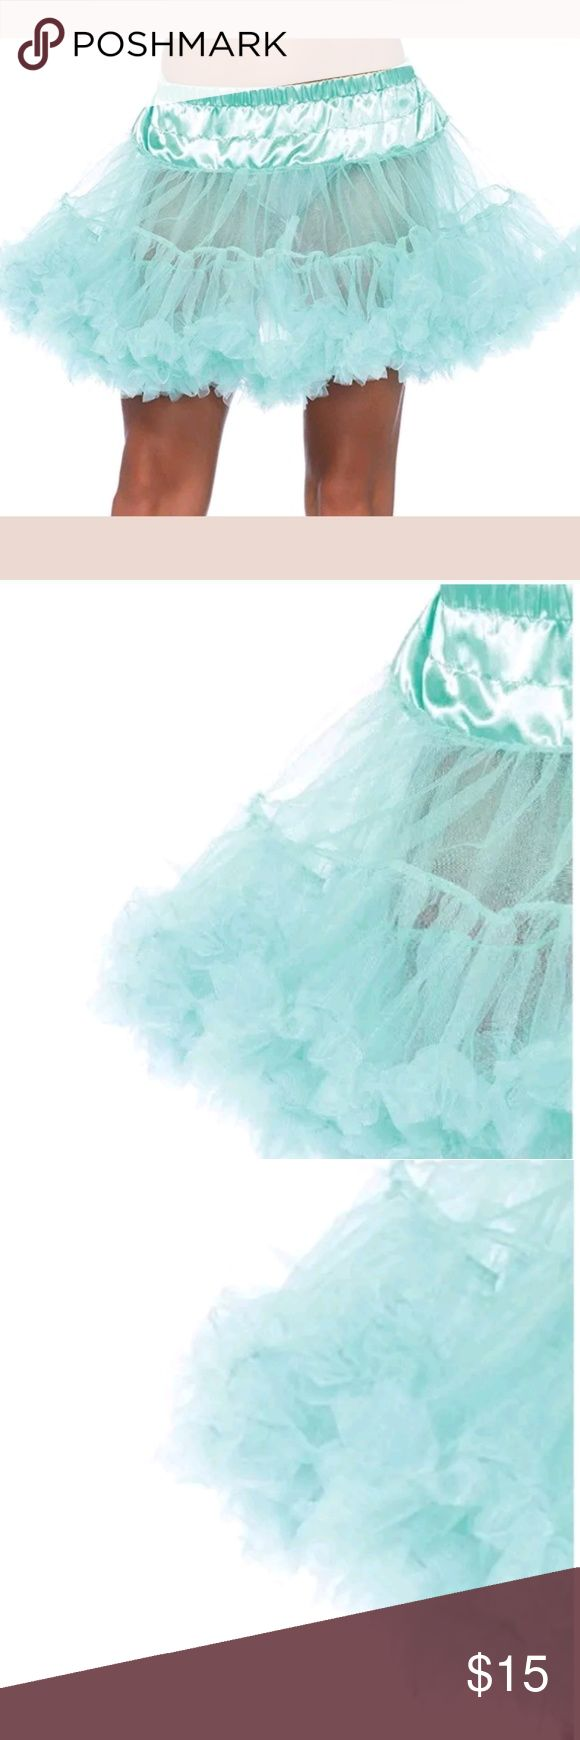 "Leg Avenue Turqoise Teal Aquamarine Petticoat OS Poof up your skirts and dresses with this awesome, affordable teal mint colored tulle petticoat from leg avenue.   ONE size fits comfortably for 24"" - 32"" Waist Leg Avenue Accessories Hosiery & Socks"